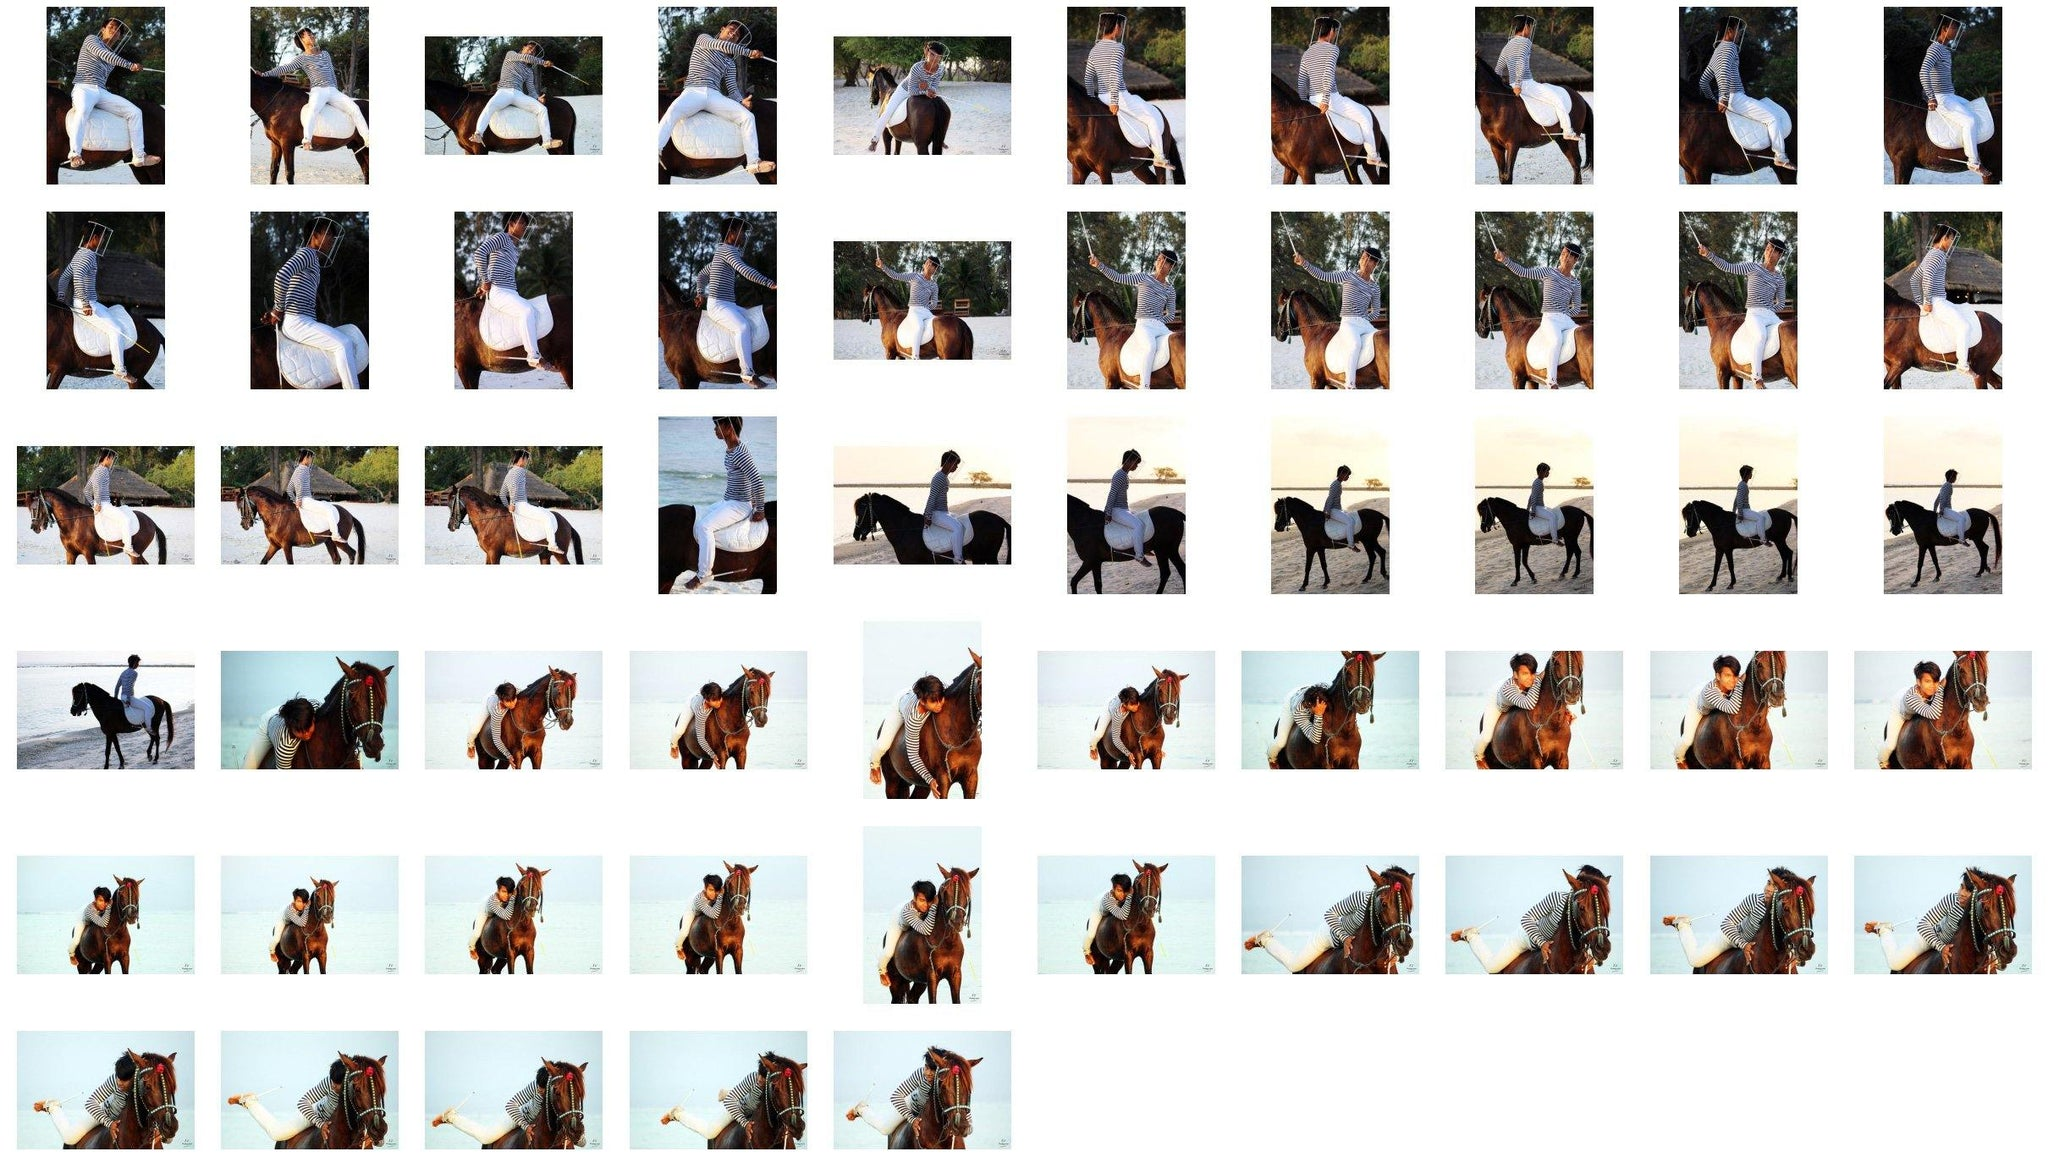 Intan in Striped Shirt and Jodhpurs Acrobating with Wand Bareback on Brown Horse, Part 1 - Riding.Vision